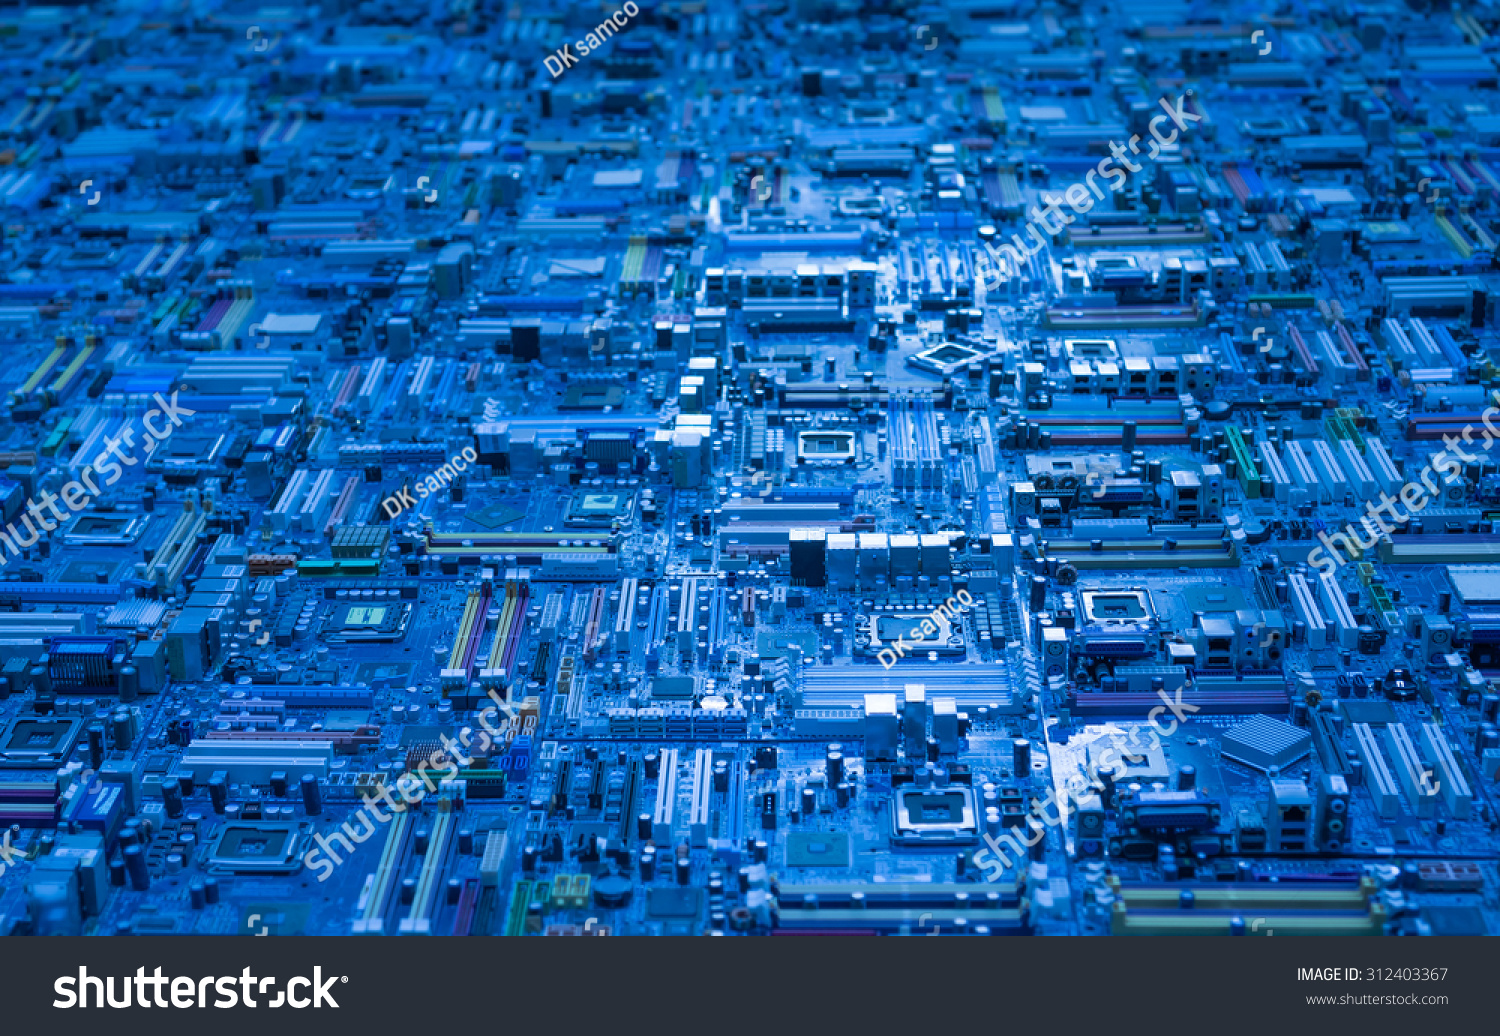 Technology Mainboard Computer Science Background